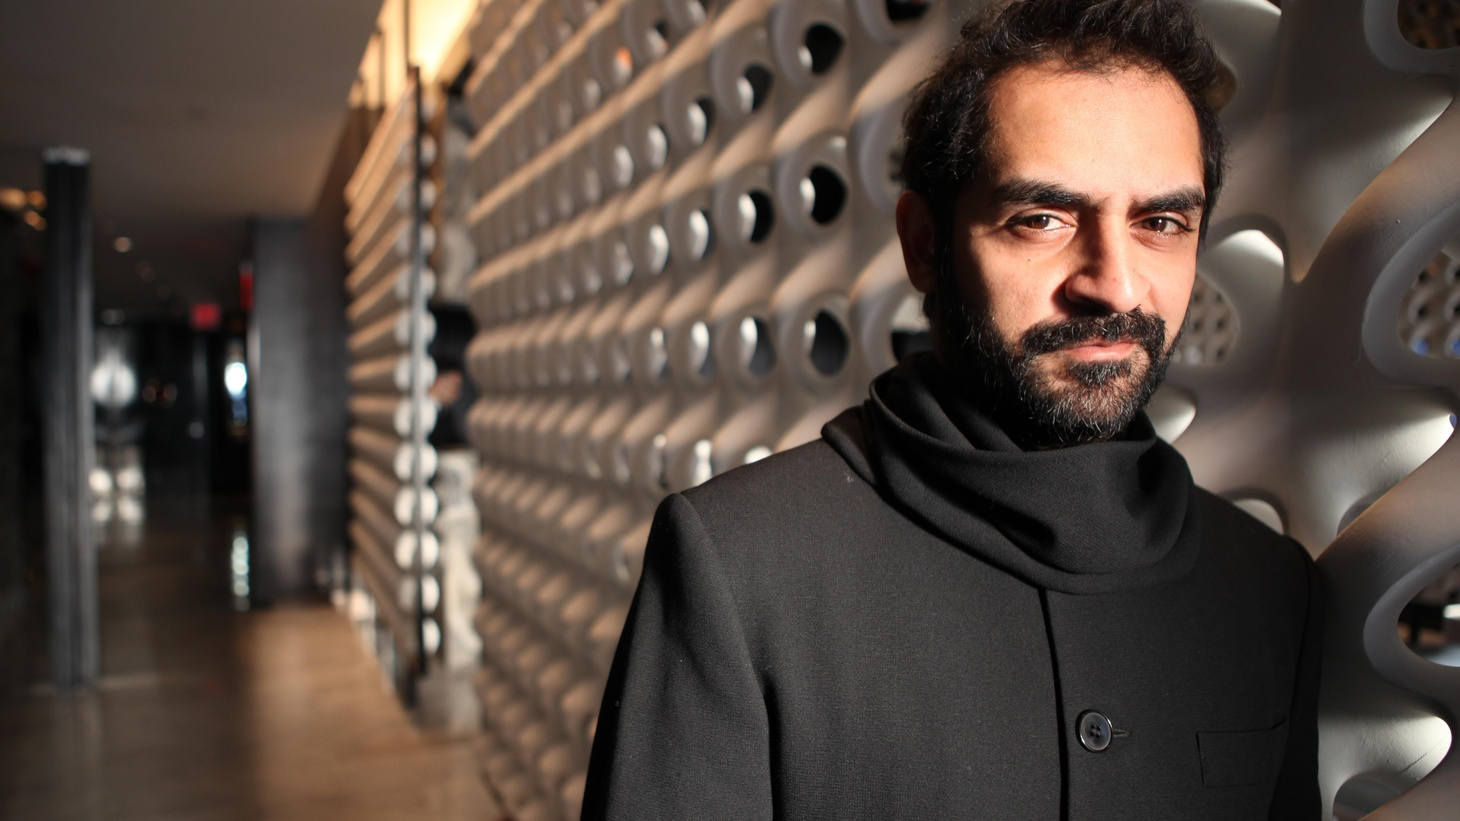 A pioneer of global fusion and Bollywood, composer Karsh Kale finds inspiration in moments between the madness. Today's Top Tune, which he wrote after his experience at Burning Man, is a case in point....